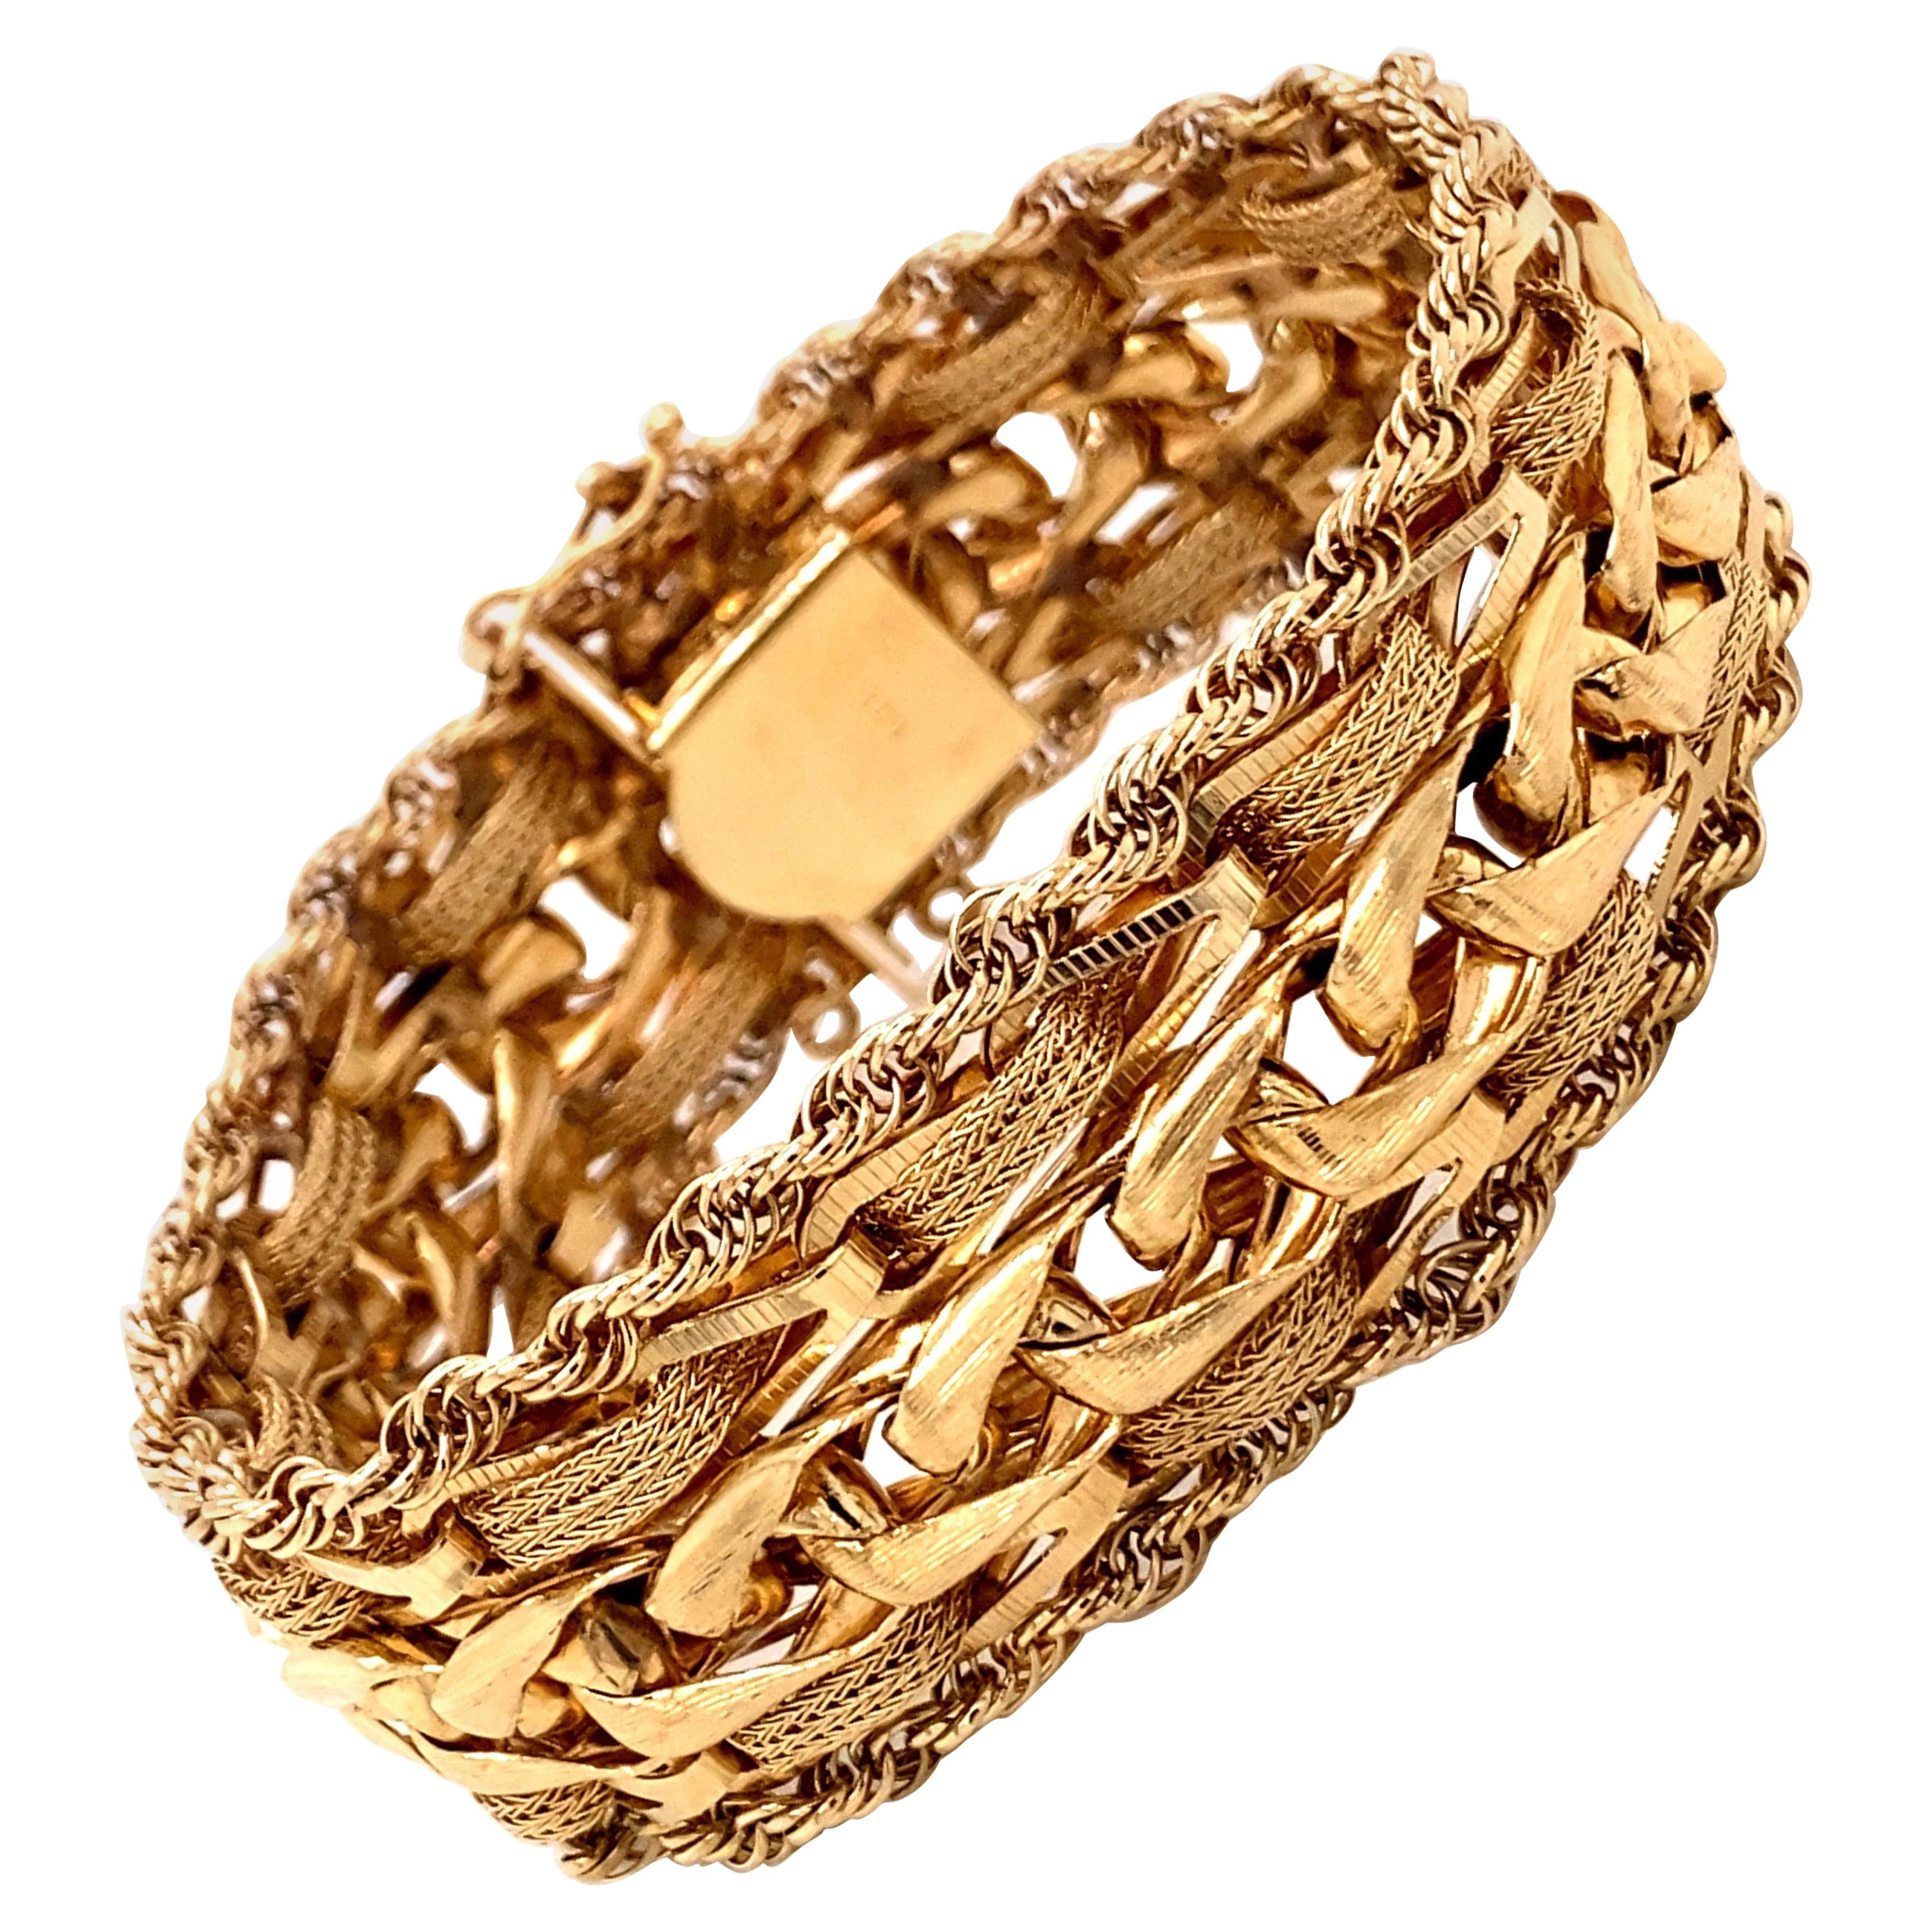 1960s 14 Karat Yellow Gold Woven Wheat Link with Rope Edge Wide Charm Bracelet